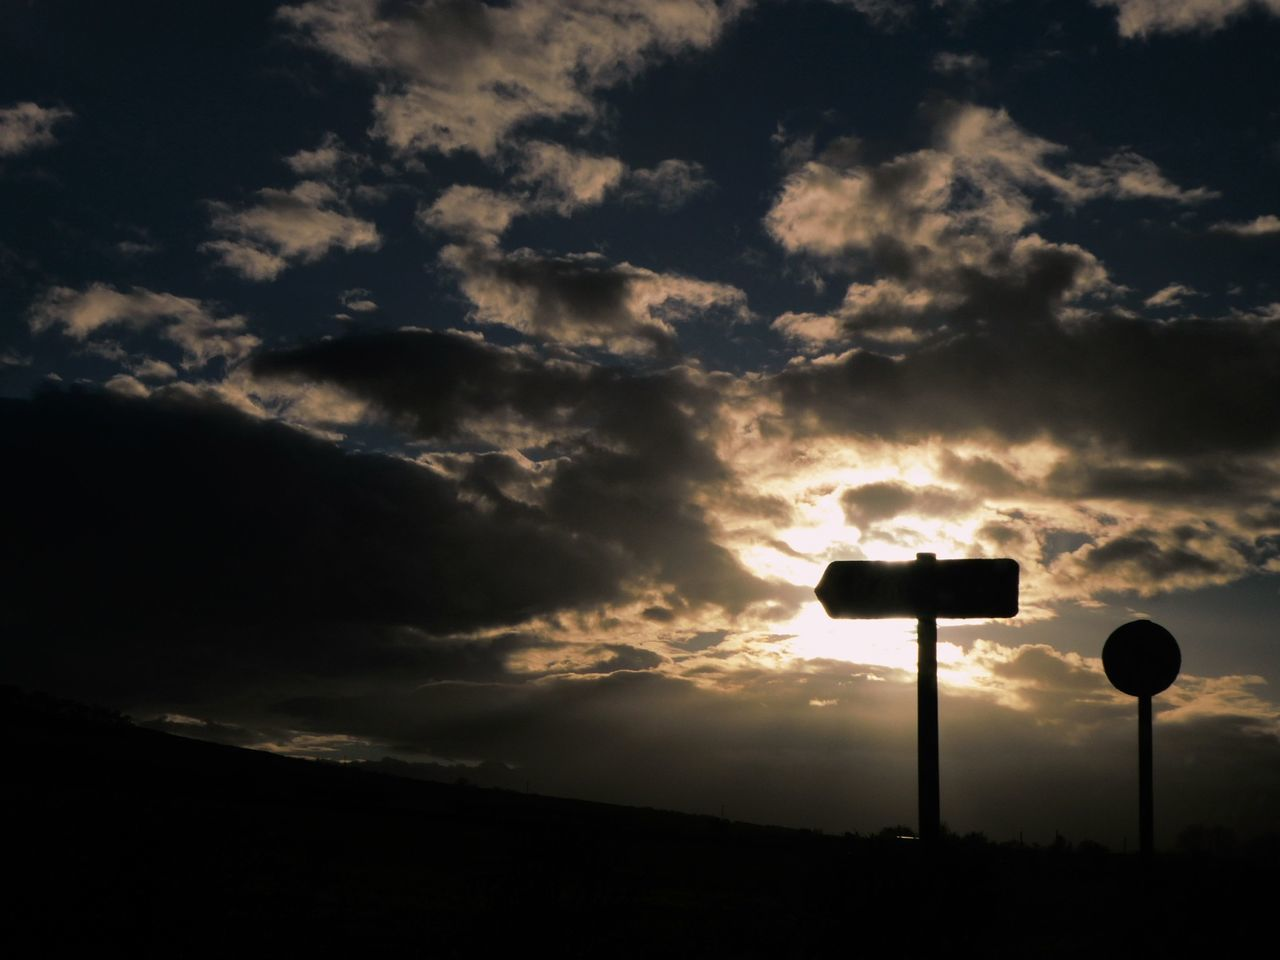 Sunset Signs ... Cloud - Sky Sky Sunbeam No People Cloudscape Outdoors Low Angle View Tranquility Beauty In Nature Road Sign Nature Storm Cloud Day Drivebyphotography Silouette Photography Silhouette Clouds Clouds And Sky Dramatic Sky Landscape